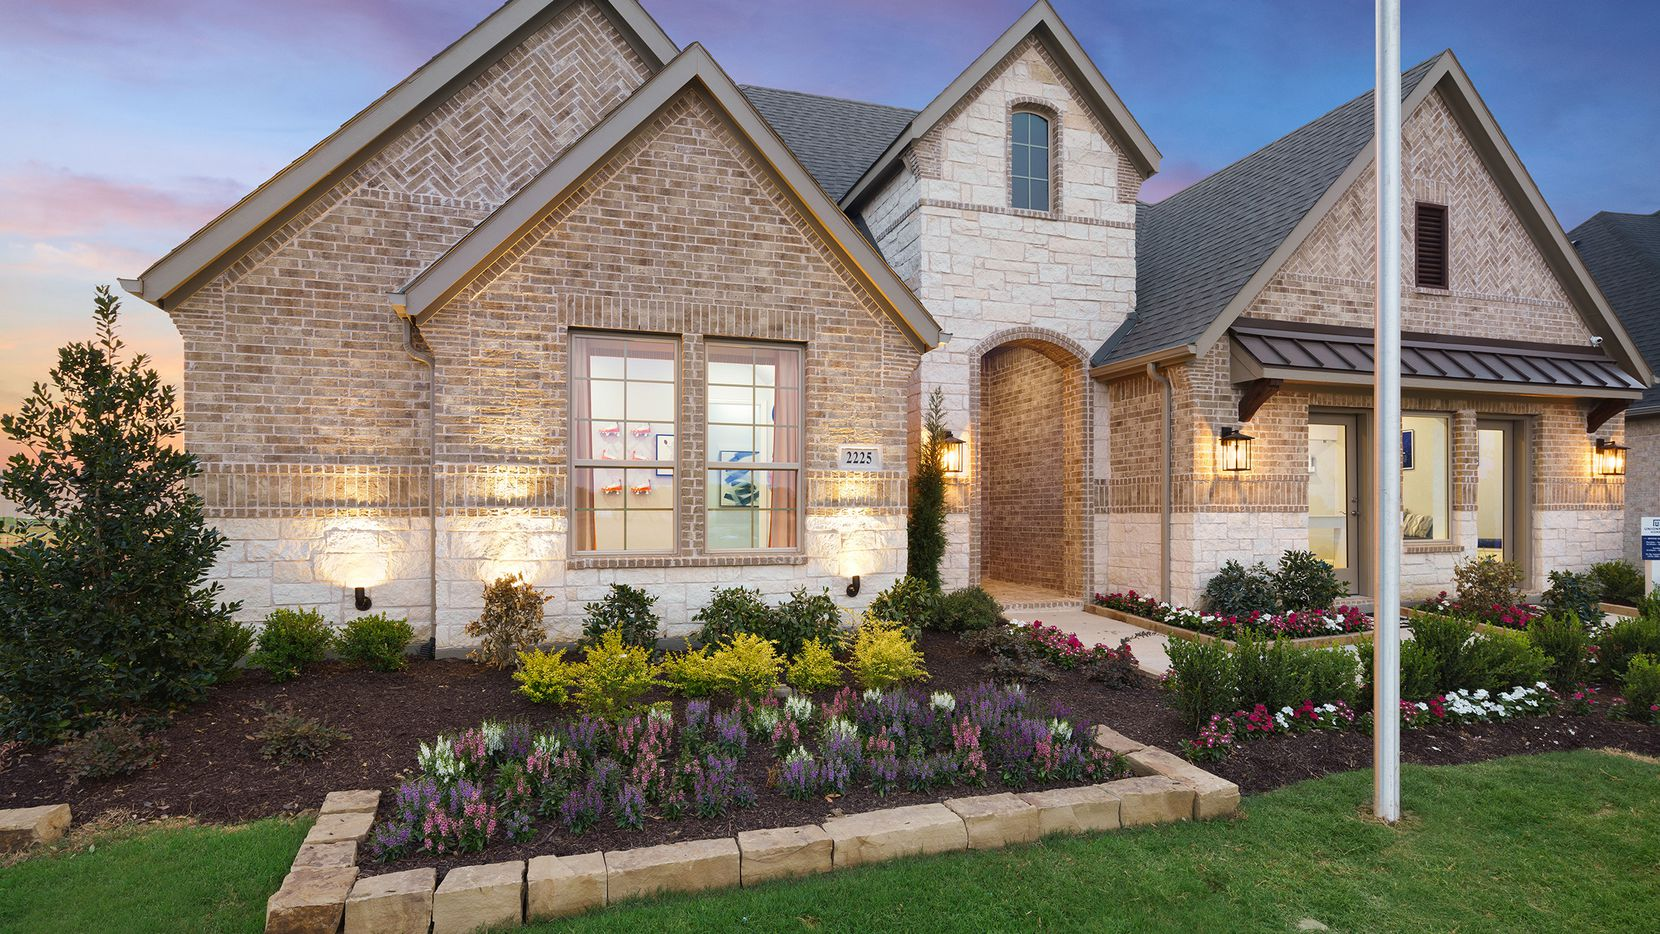 UnionMain Homes' Mason floor plan at 2525 Pinner Court in Celina's Cambridge Crossing offers a versatile floor plan and is open for tours.